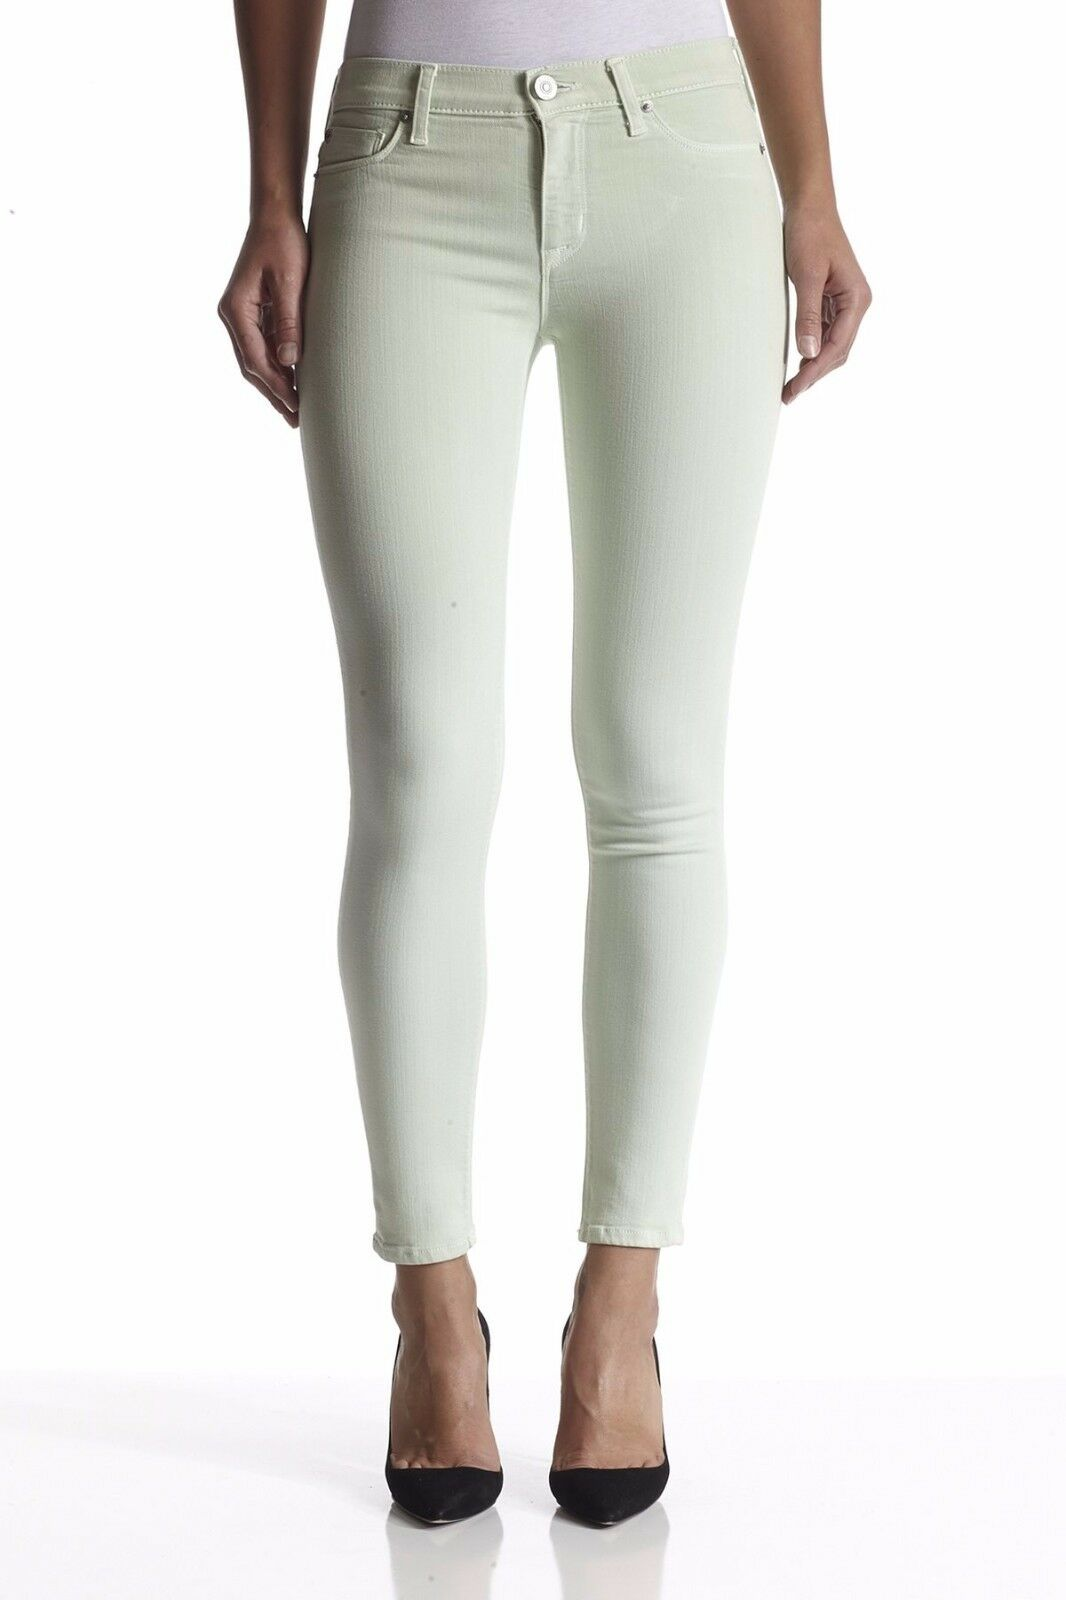 176 NWT HUDSON 25 Seafort Light Green Nico Mid Rise Ankle Super Skinny Jeans